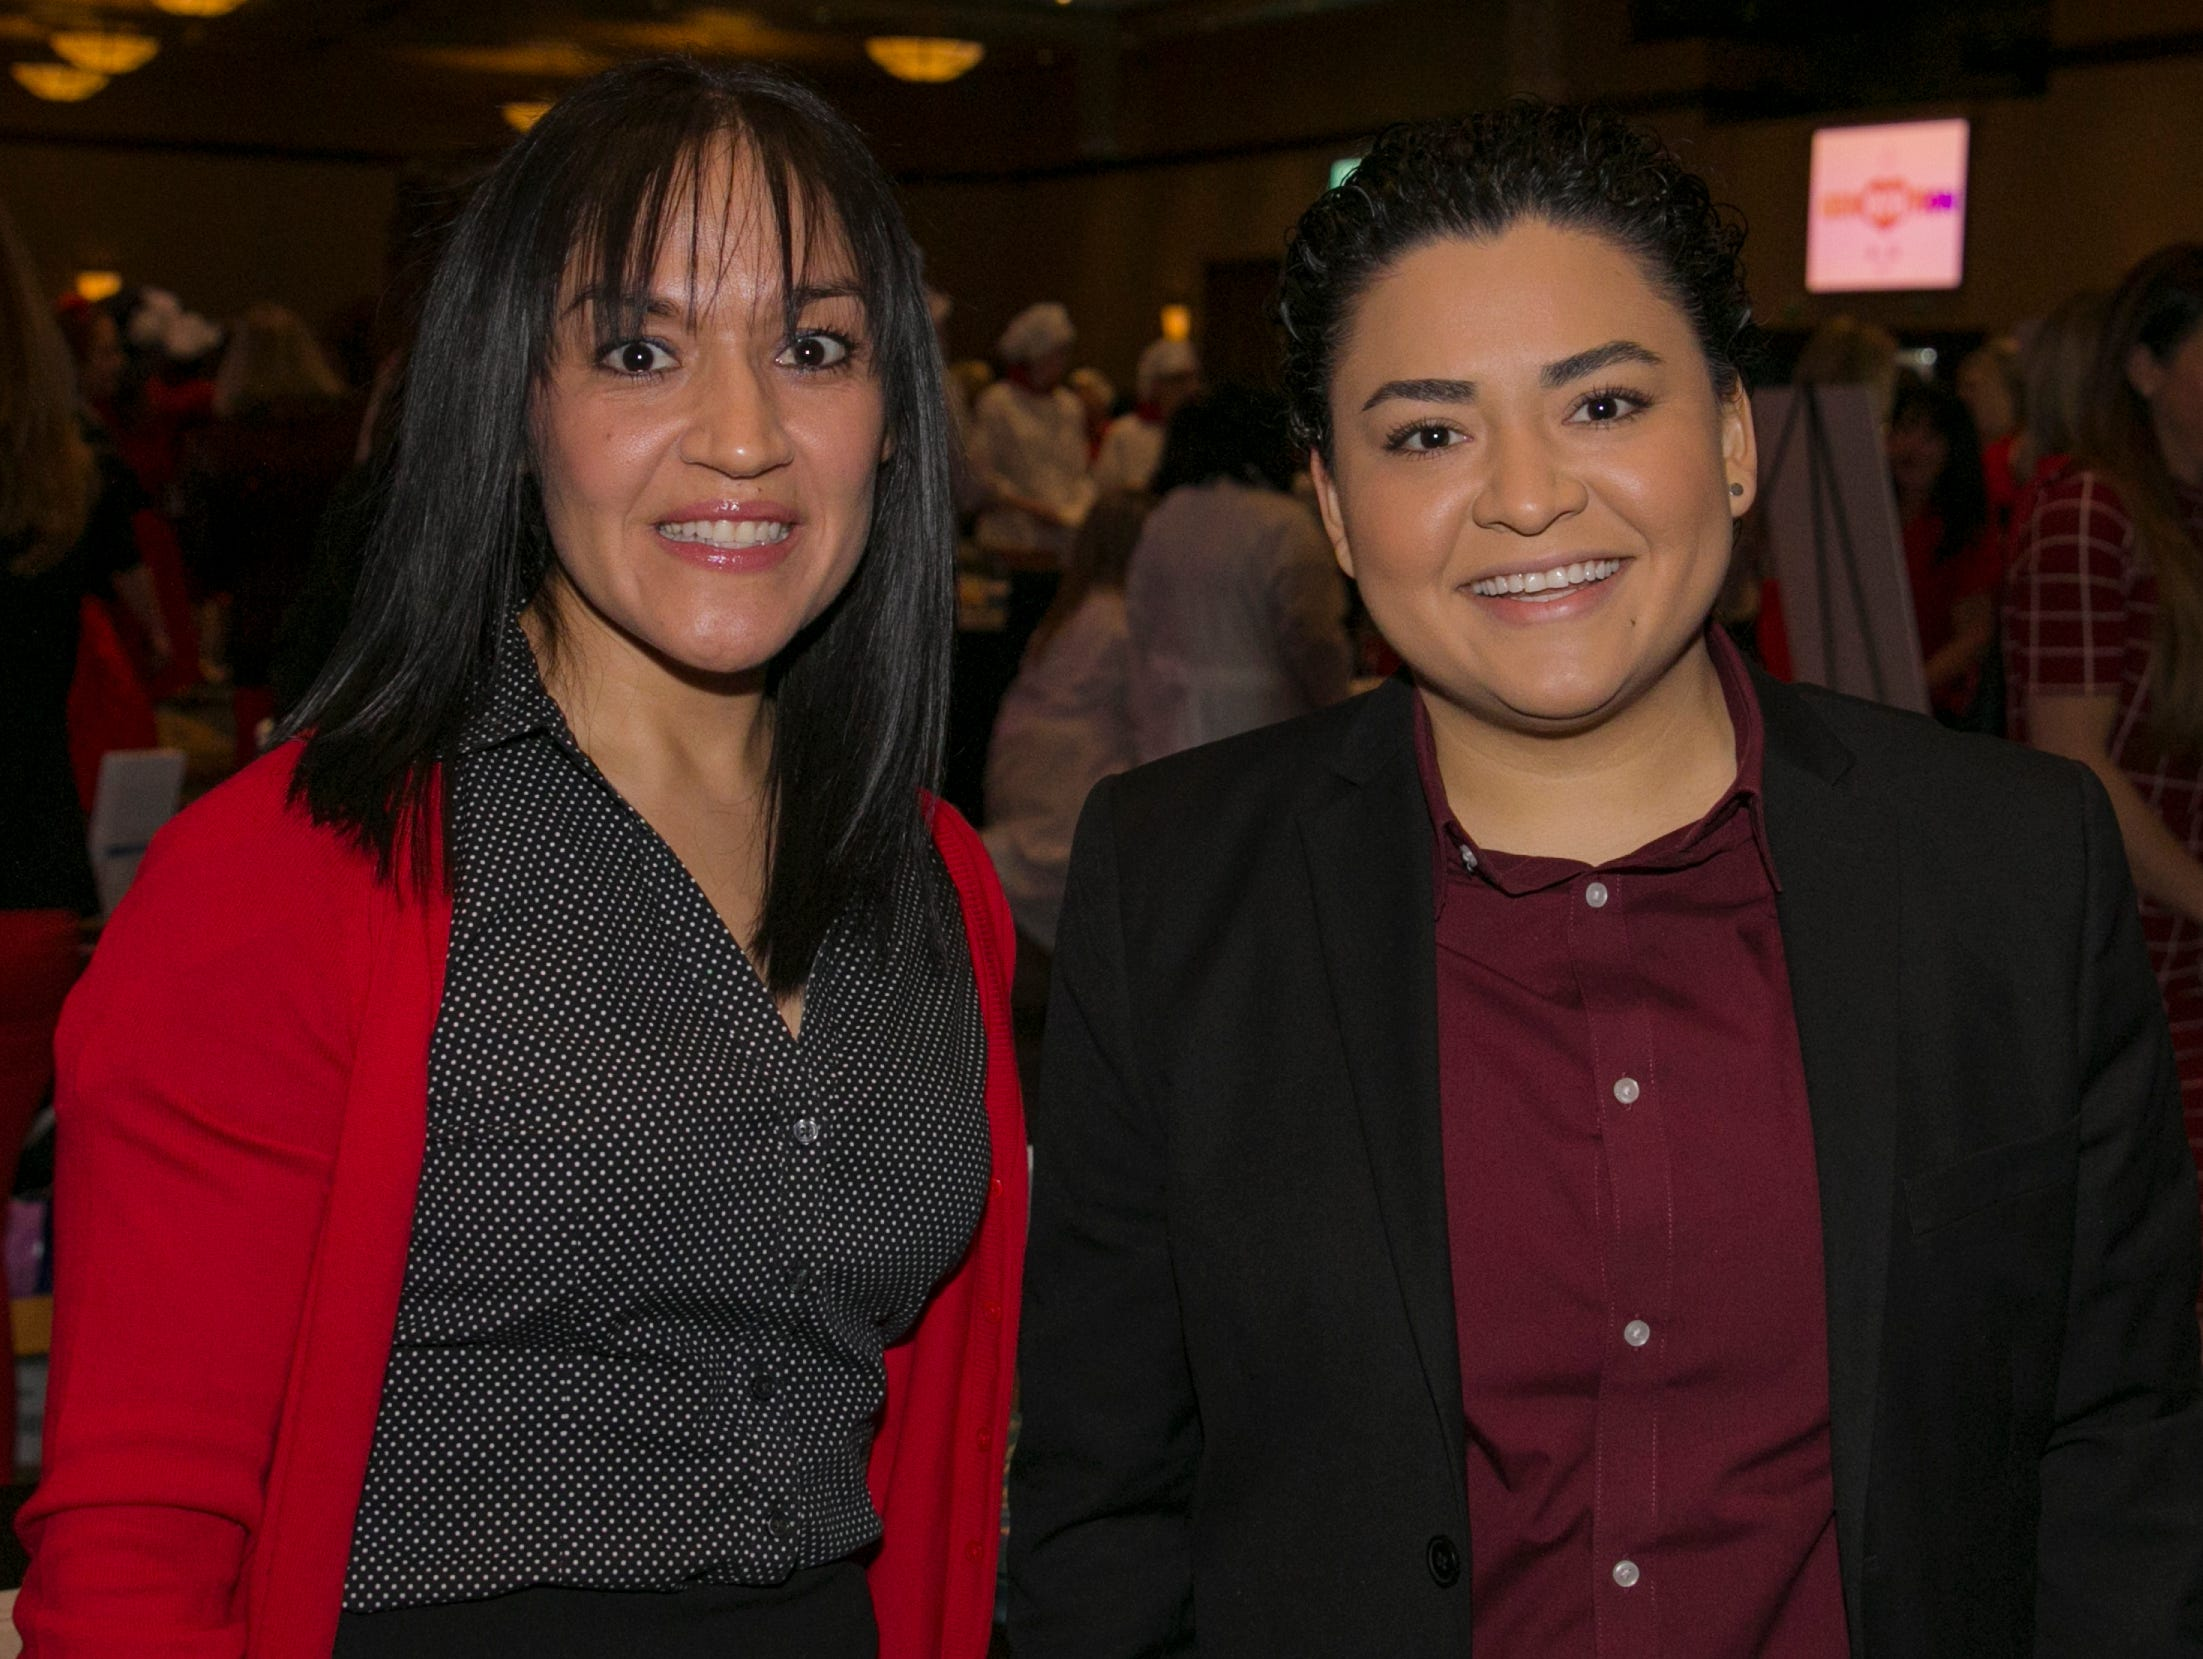 Maria Reyes and Lilian Zwart during the 15th Annual Go Red for Women Luncheon on Friday night,March 1, 2019 held at the downtown Reno Ballroom.